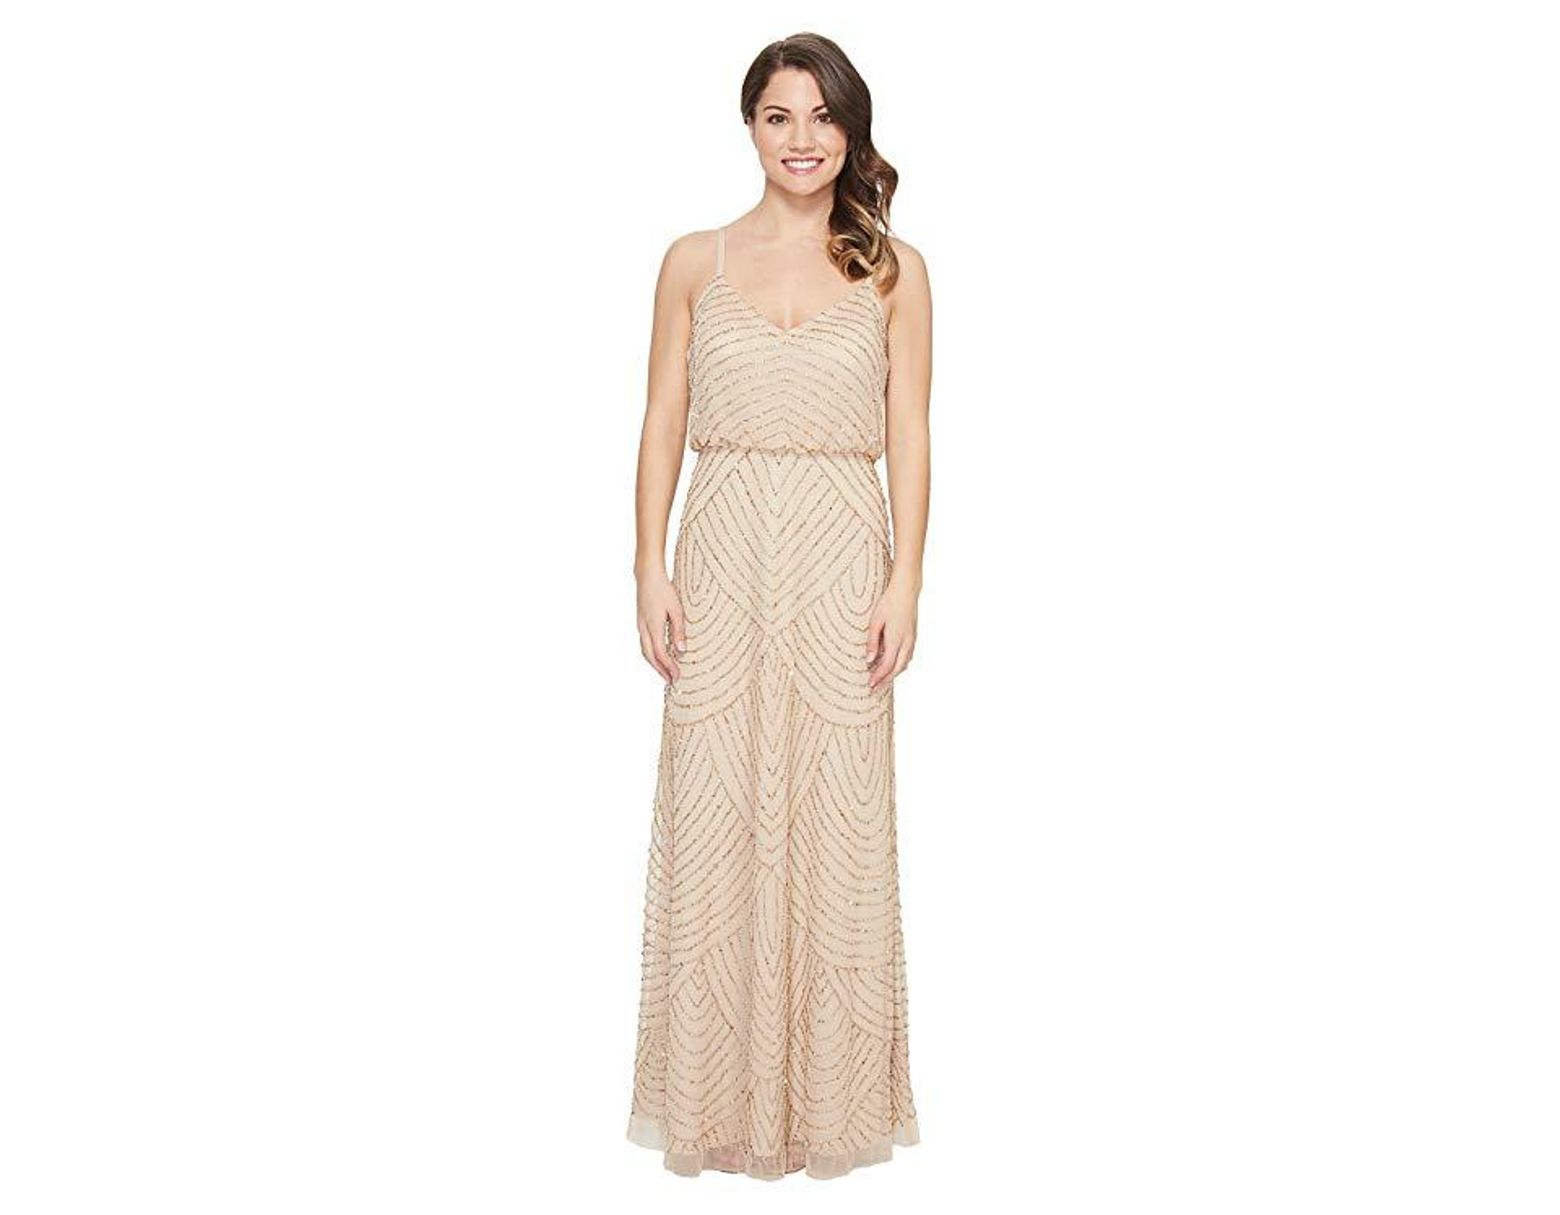 a20593ef1 Adrianna Papell Petite Long Beaded Blouson Slip Dress (champ/gold) Dress in  Natural - Lyst